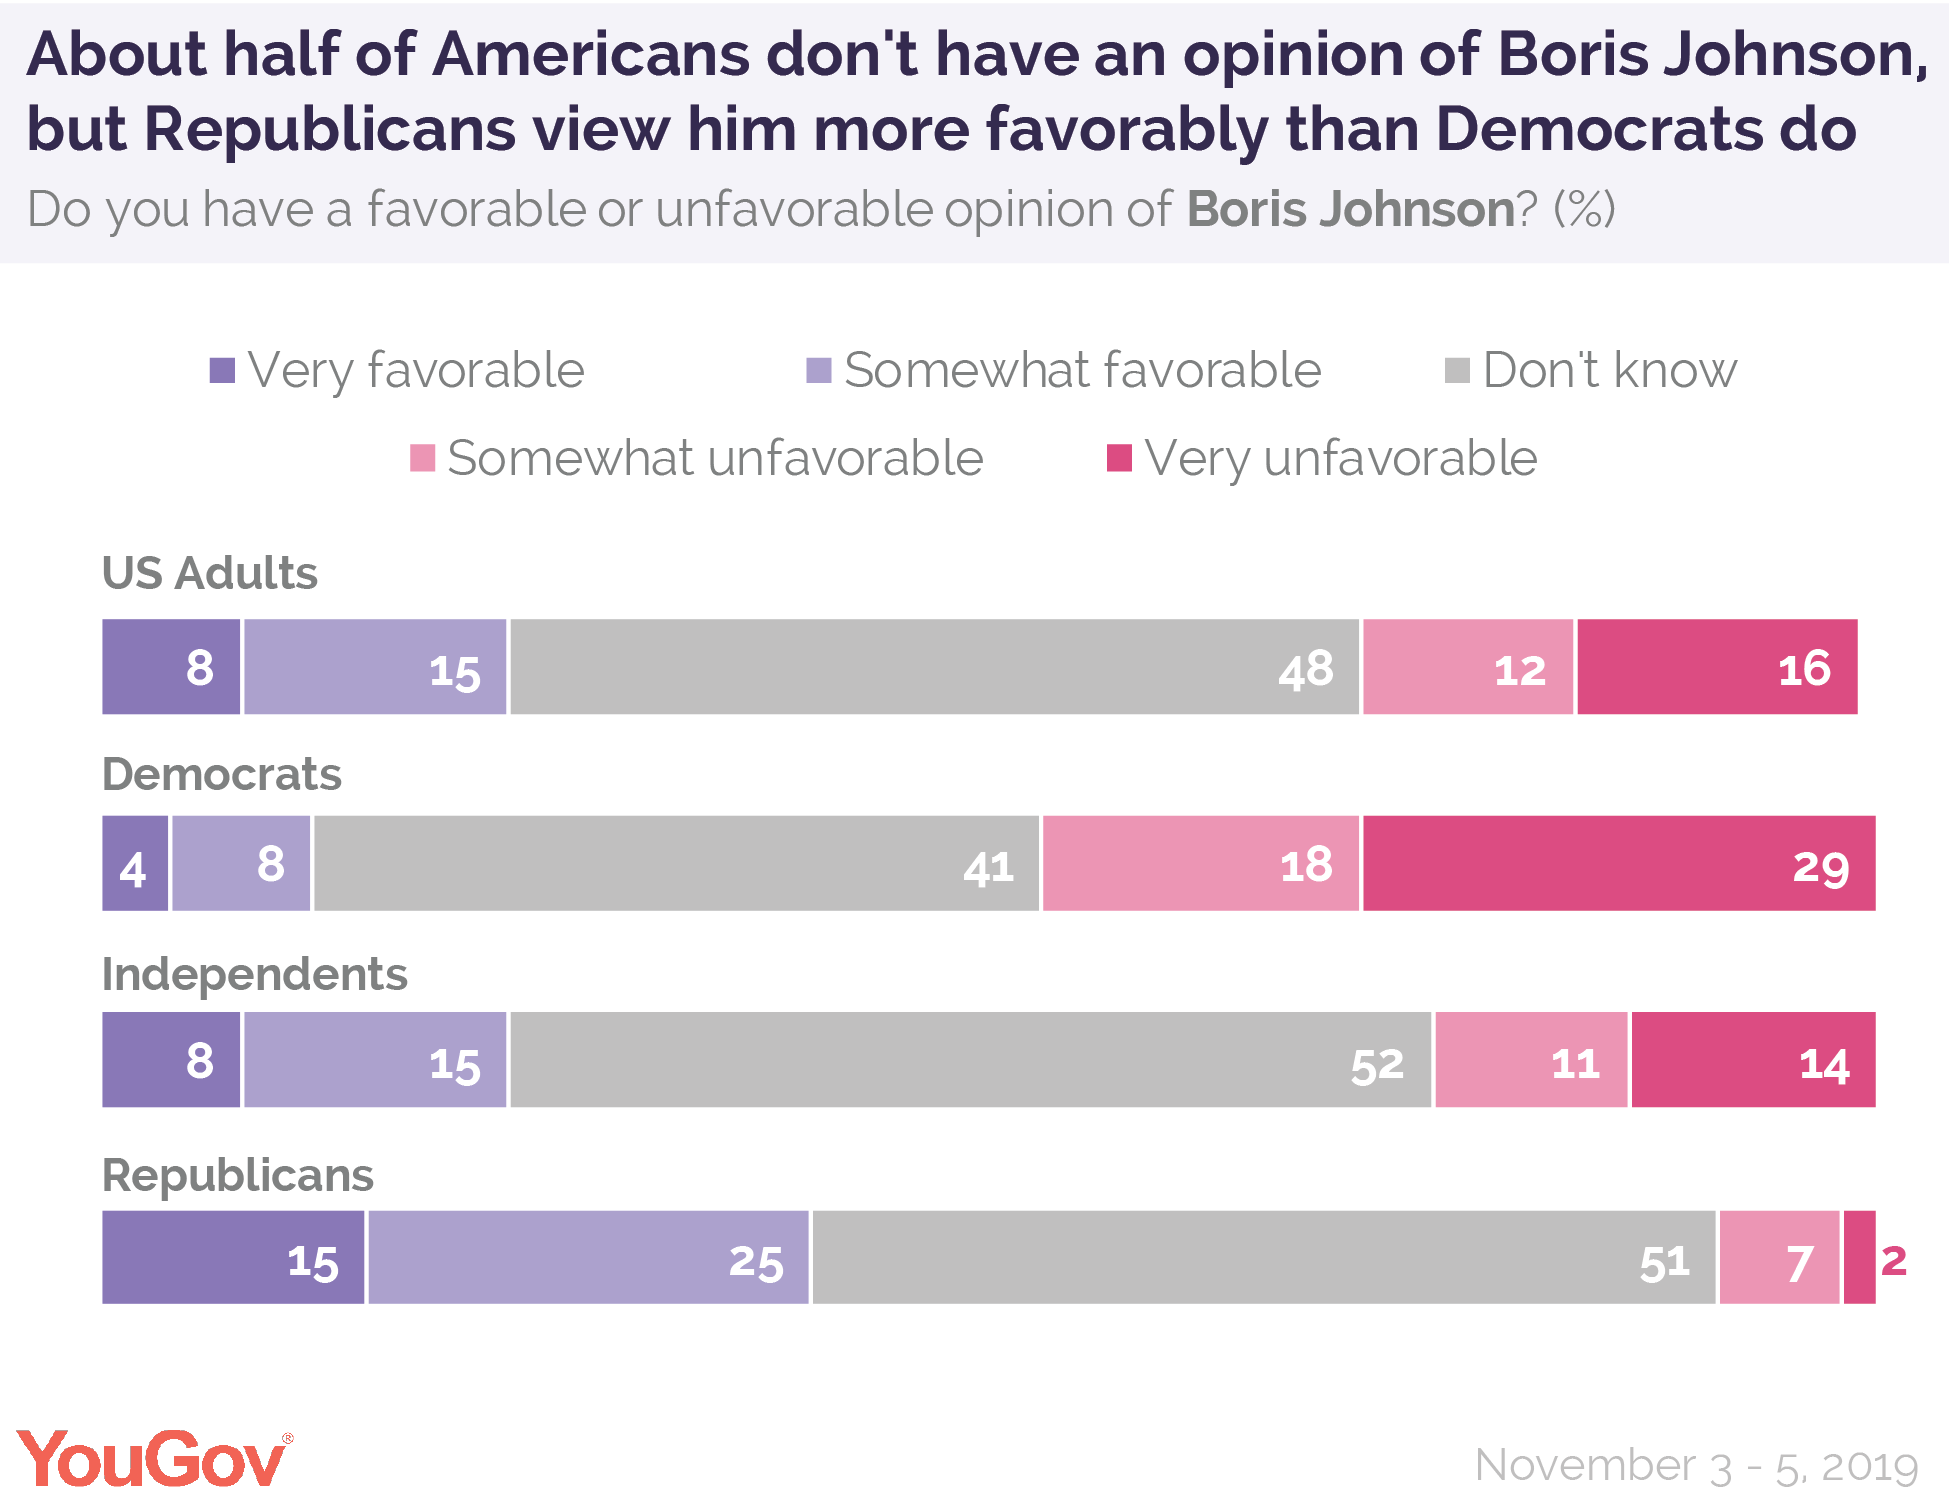 About half of Americans don't have an opinion of Boris Johnson, but Republicans view him more favorably than Democrats do